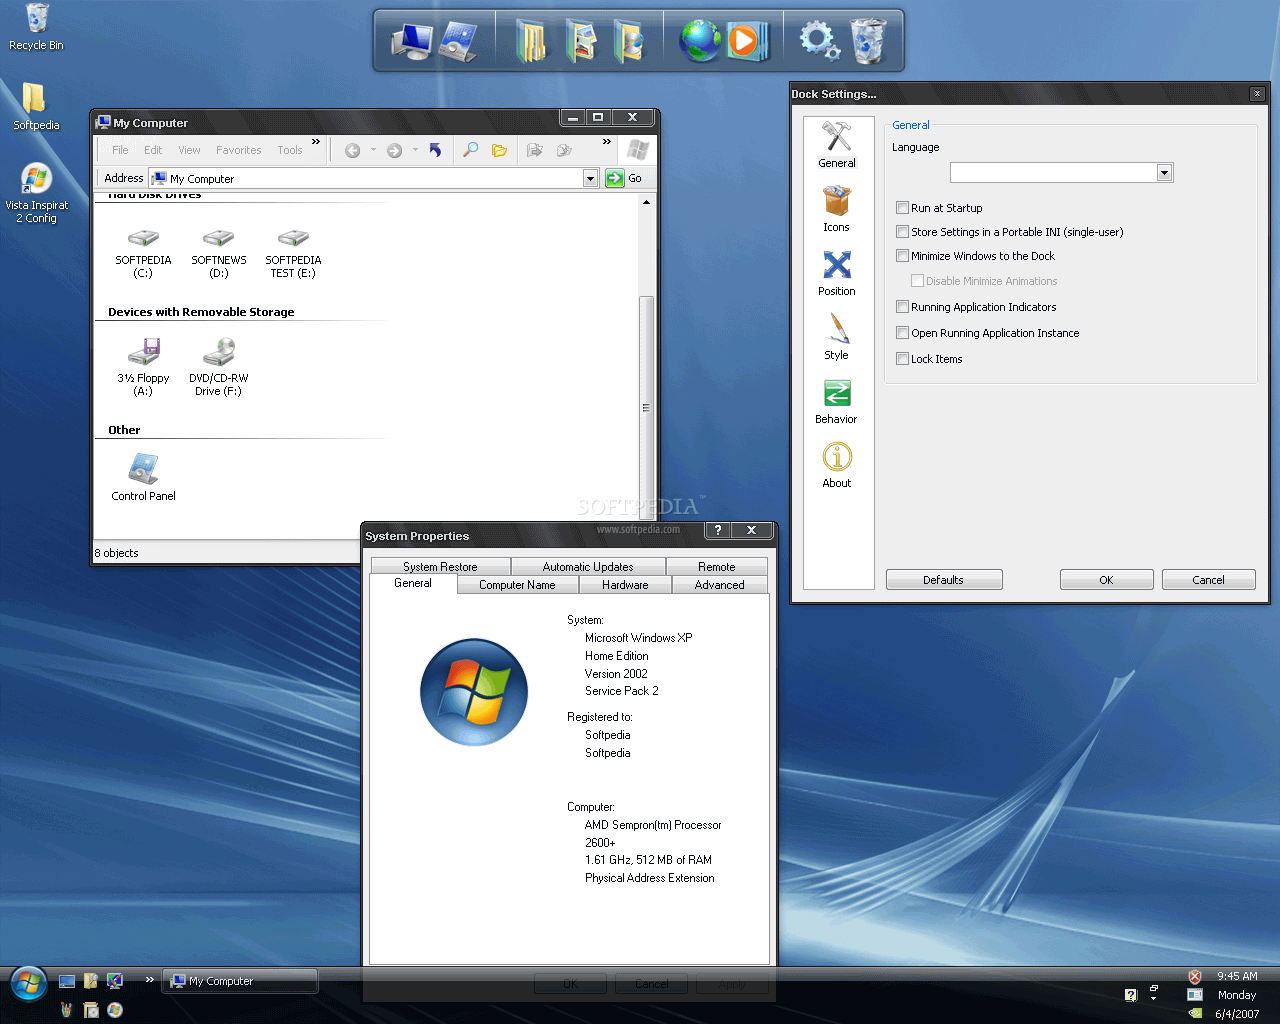 windows vista inspirat pack 2